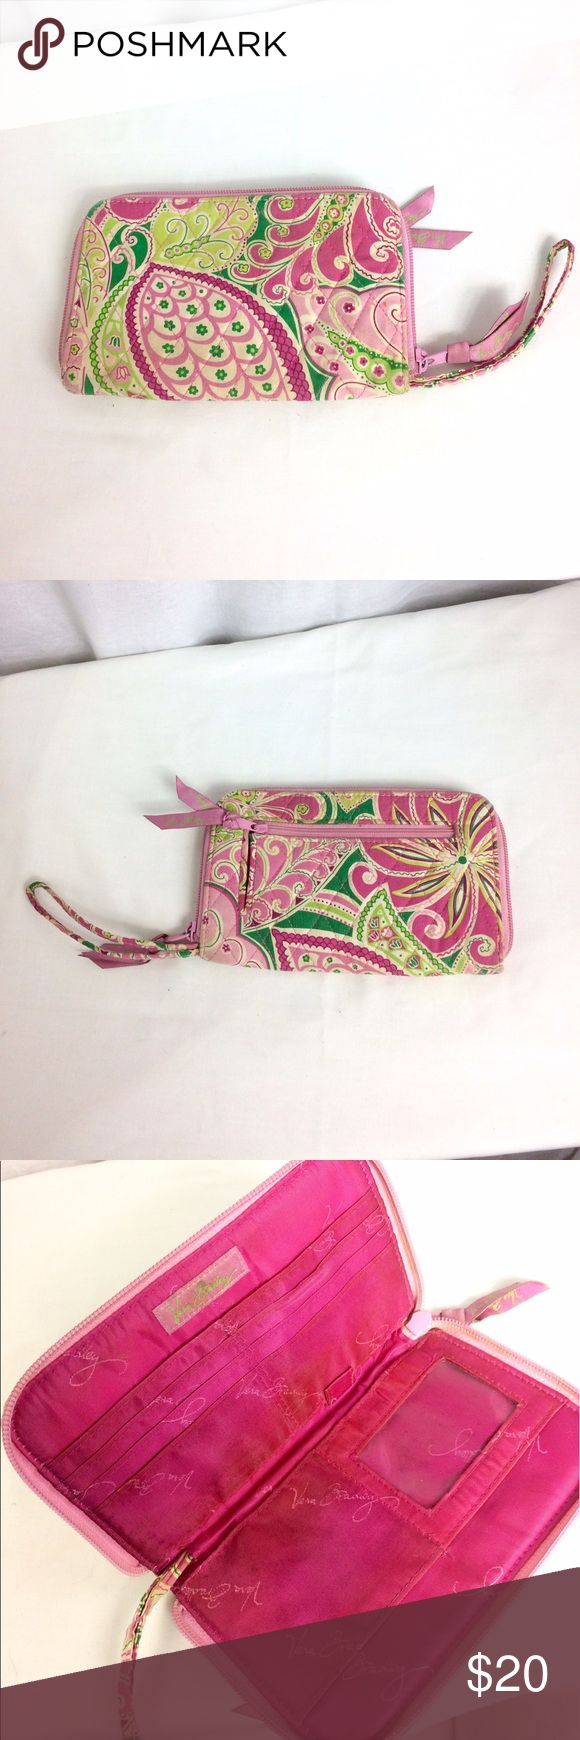 "Vera Bradley Wristlet in Pinwheel Pink This Wristlet has been preloved, but is still in good condition. The outside is in pretty good shape, but there is some slight discoloration on the inside. Also, it has become quite flexible with use, & the cardboard inside is no longer very stiff. The Pinwheel Pink pattern ran Jan. 2008 - May 2009. The dimensions measure about 8"" x 5"" x .75"" with a 11"" wrist strap. Reasonable official offers may be considered 😊 Vera Bradley Bags Clutches & Wristlets"